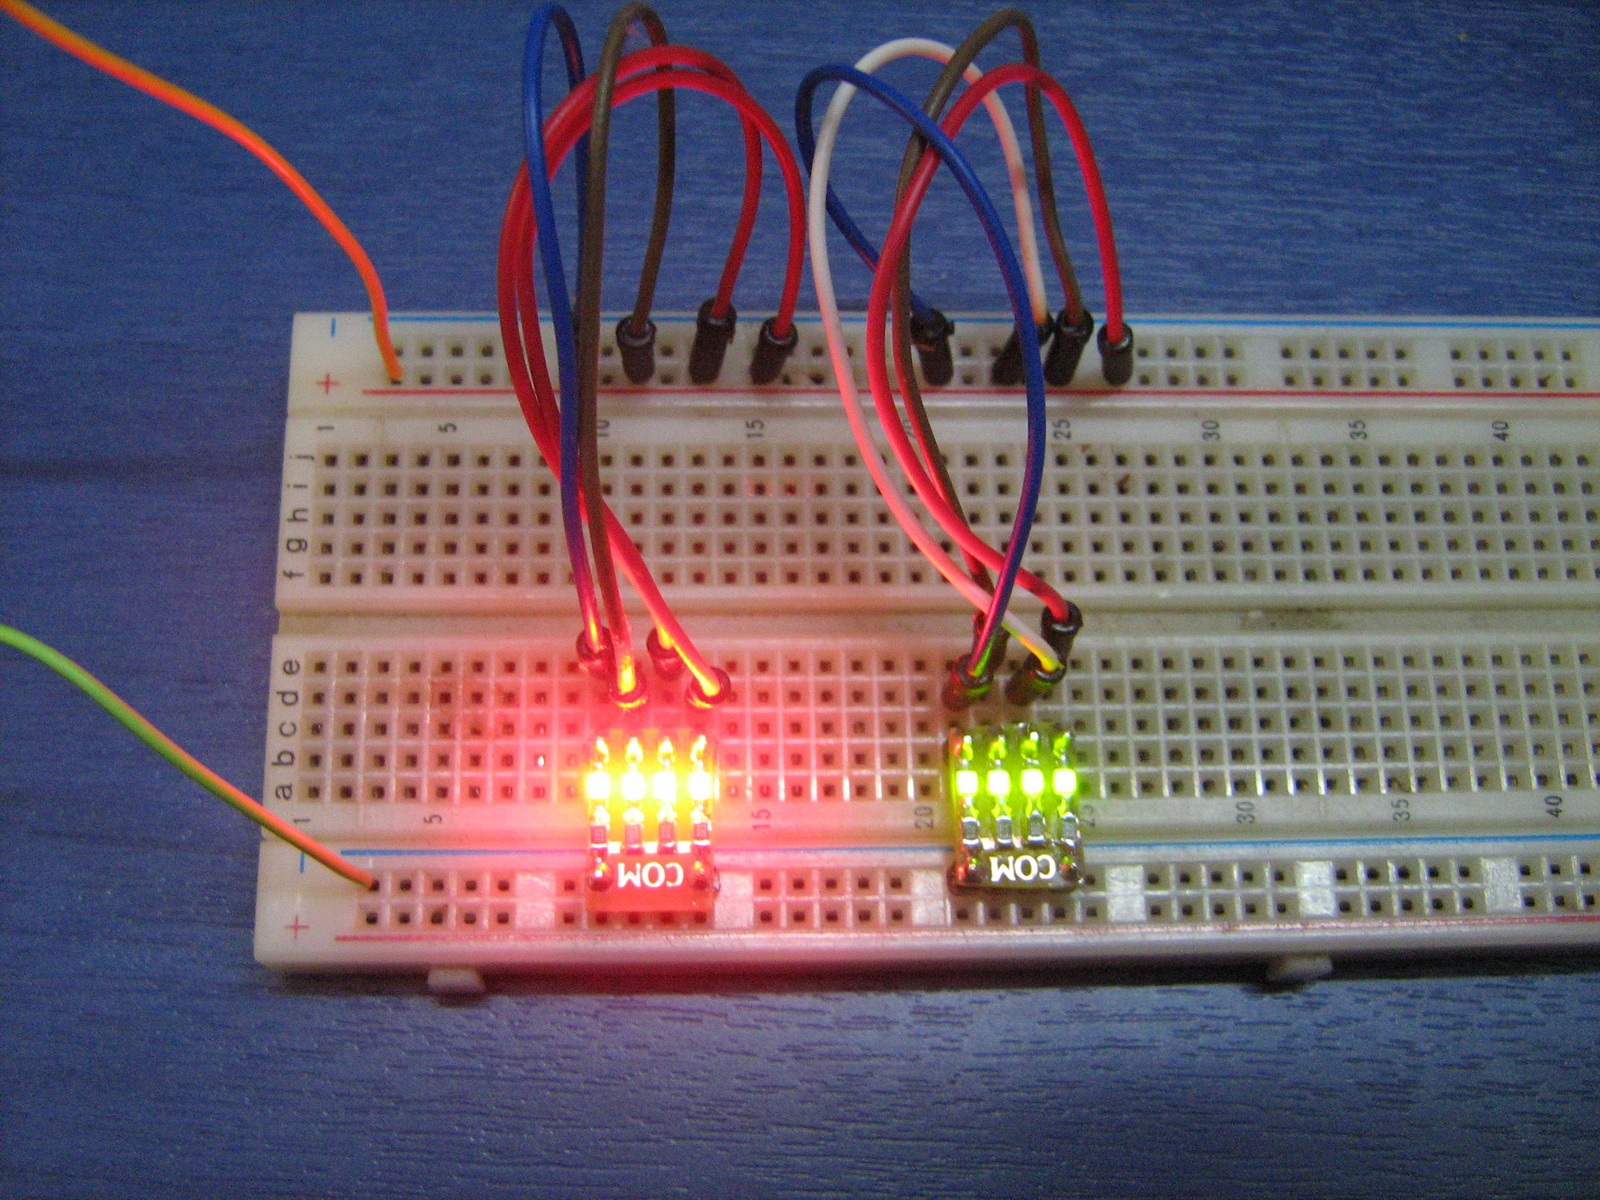 Projects Pcb Heaven Electronic For Beginners Circuits Tiny Led Debugging Board Breadboard Prototyping I Made A Very Simple With 4 Leds And Resistors Pre Wired Mainly